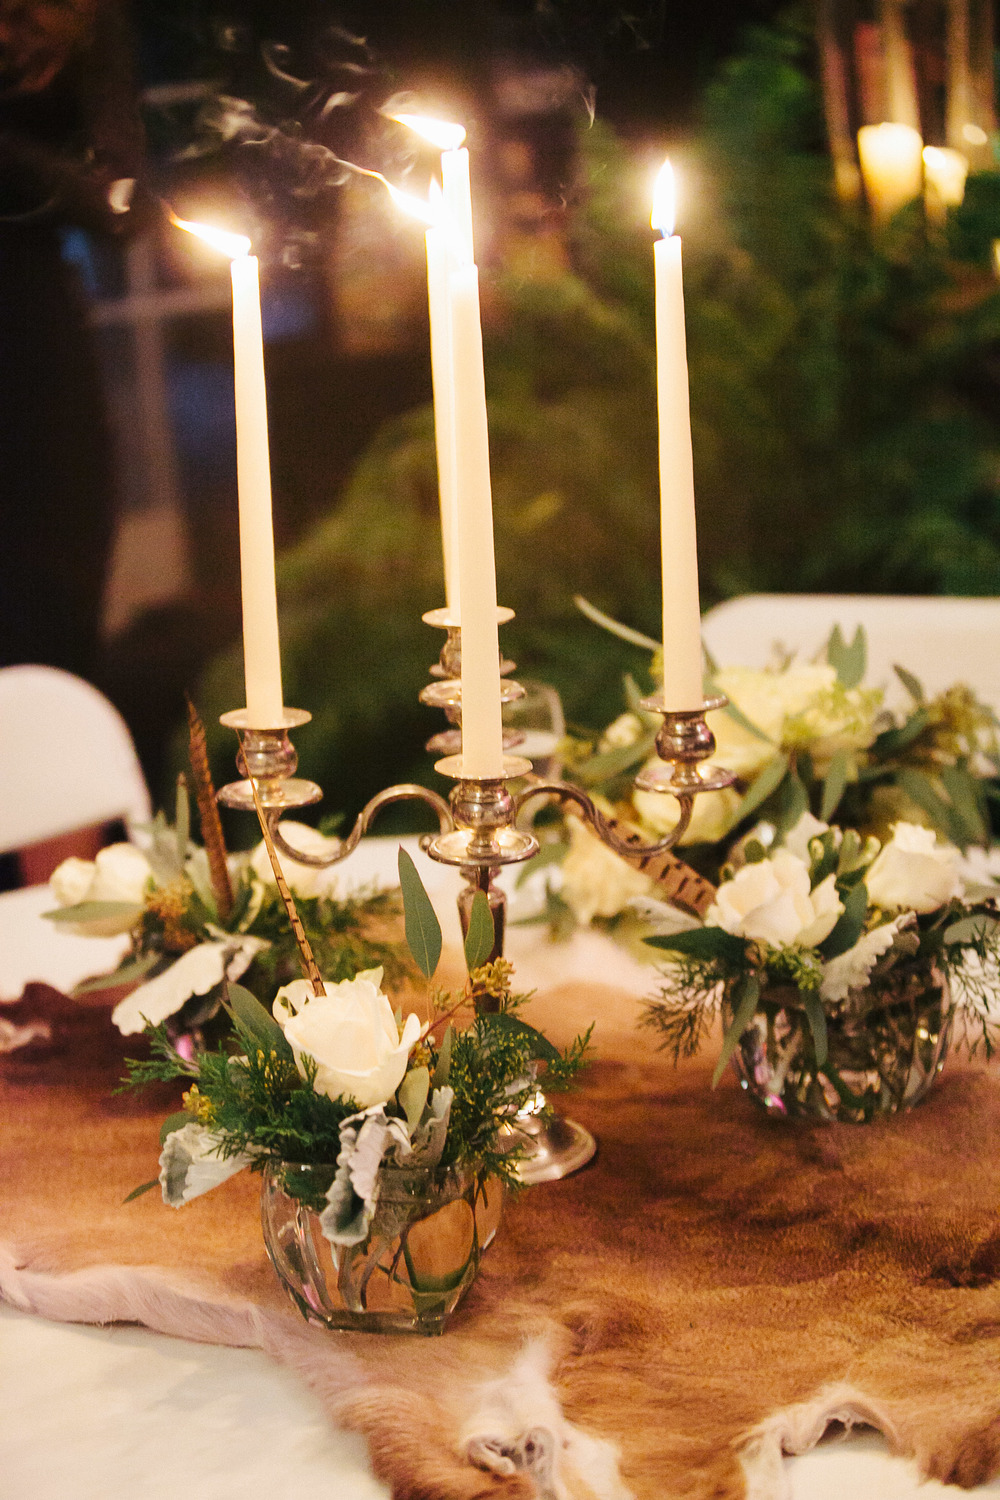 Lush centerpieces of white roses, hydrangeas, spanish moss and pheasant feathers, animal fur table runners and antique candelabras